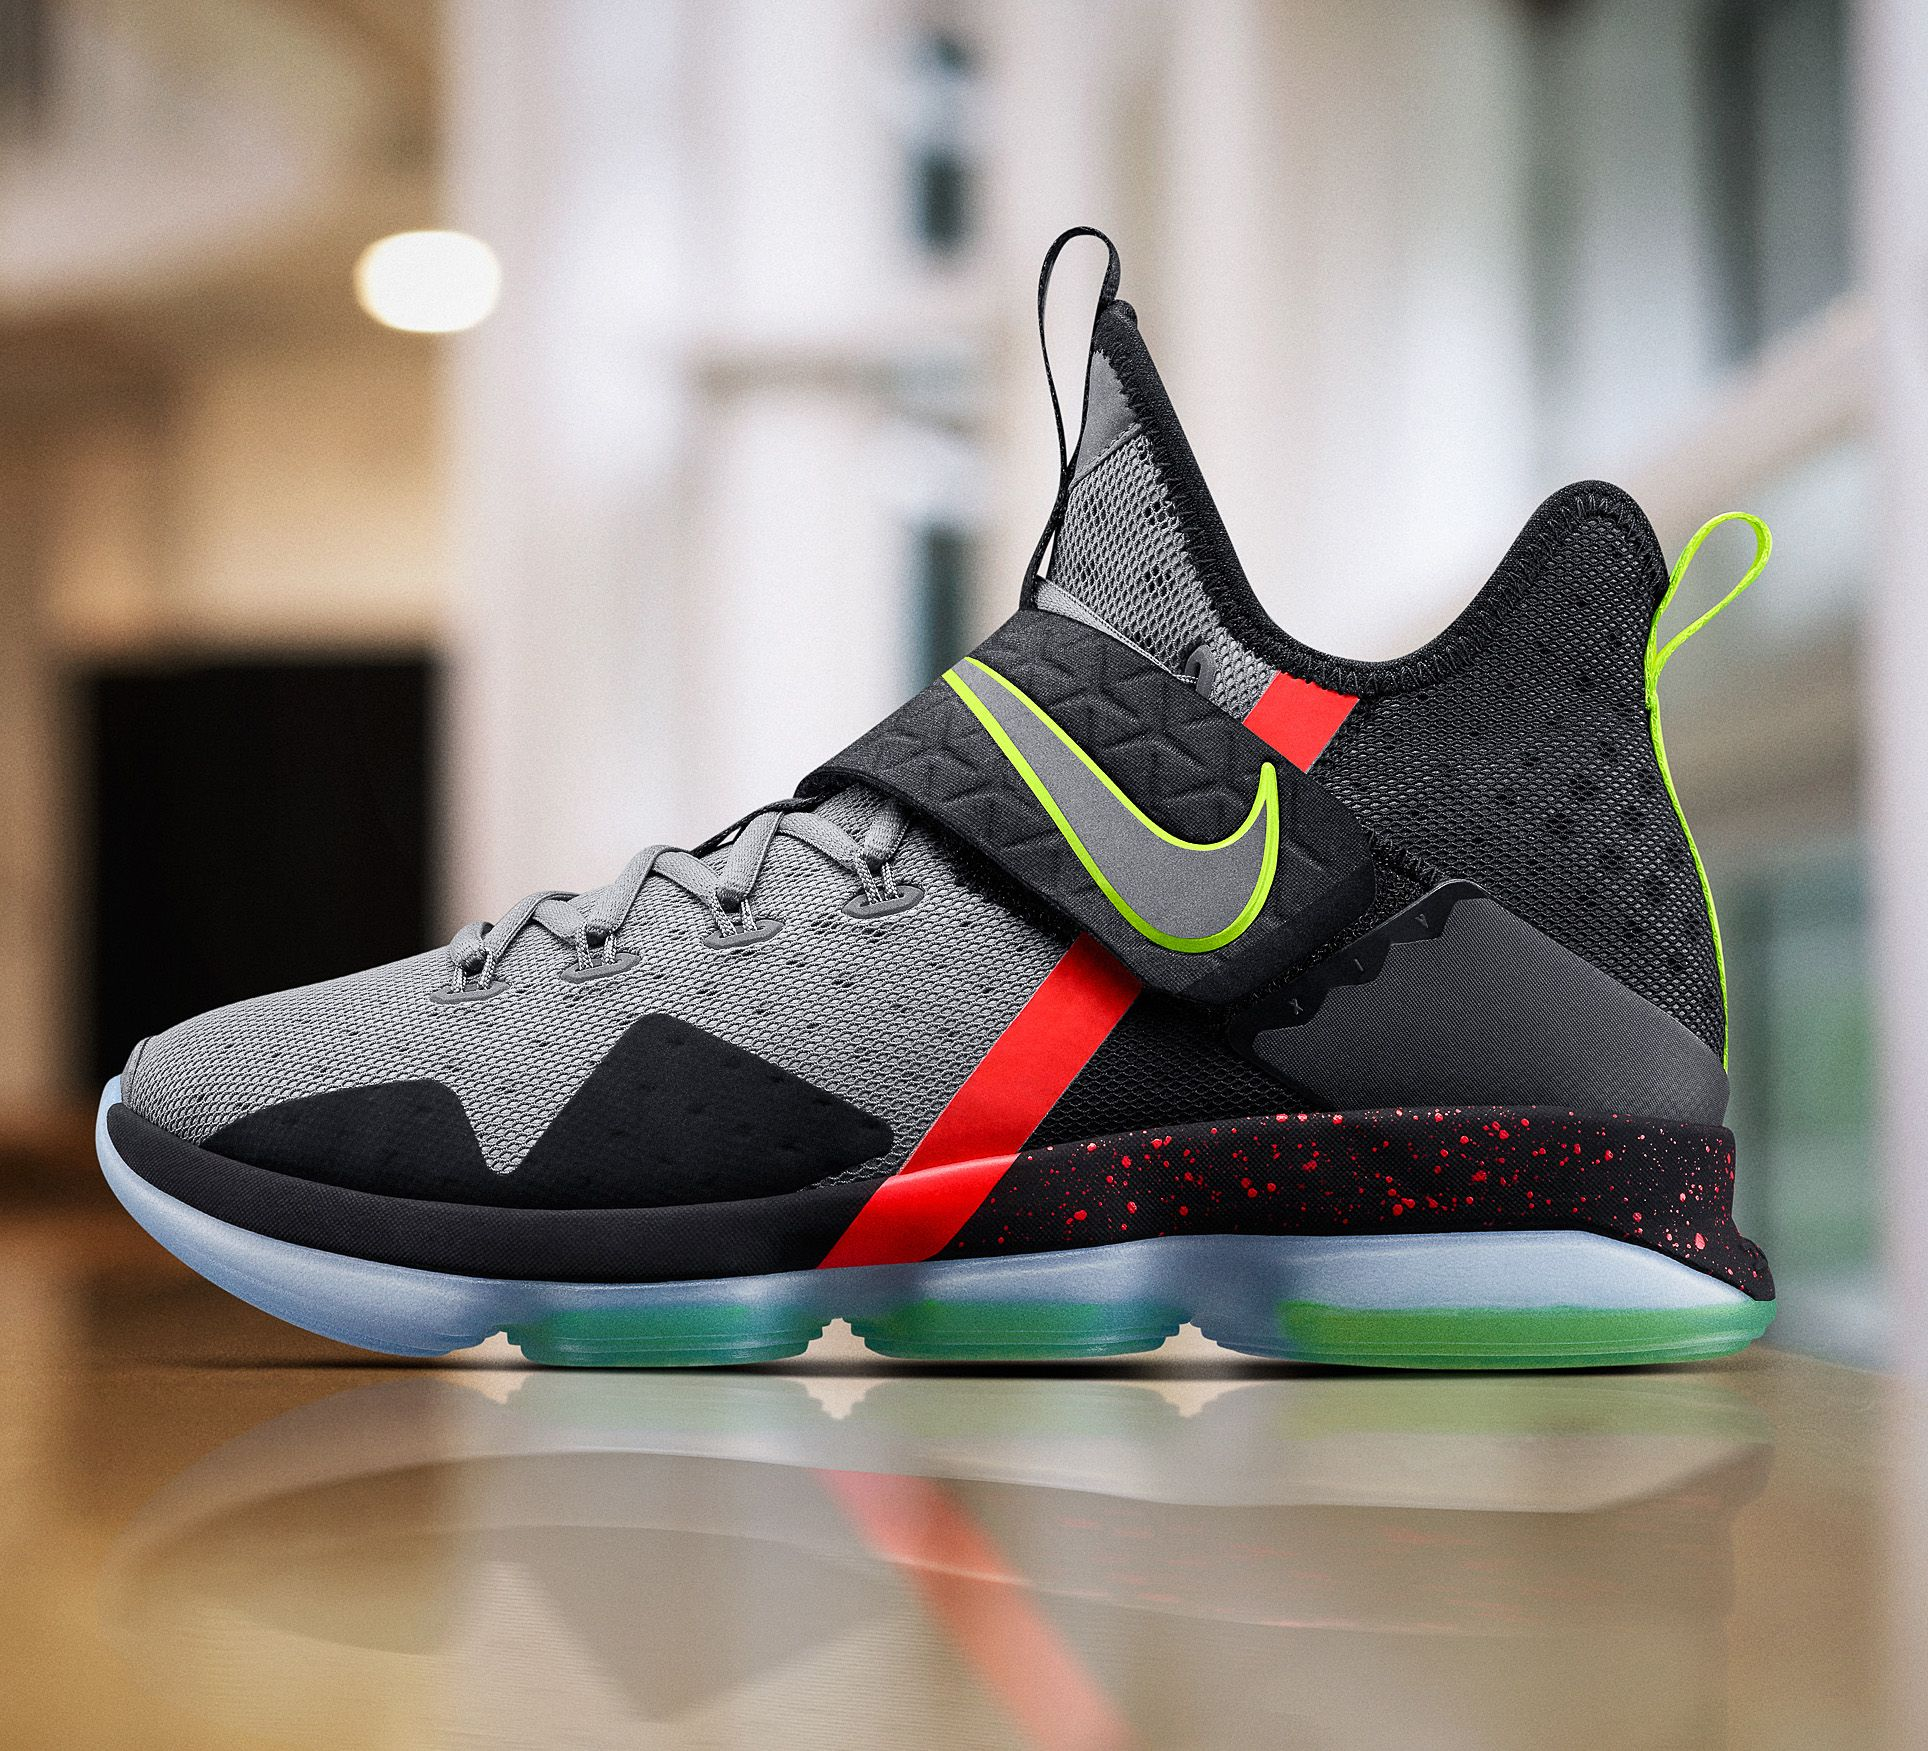 Nike LeBron 14 Release Date. LeBron James debuted the Nike LeBron 14 on  Christmas Day. Look for the Nike LeBron 14 to release in 2017 in several  colorways.